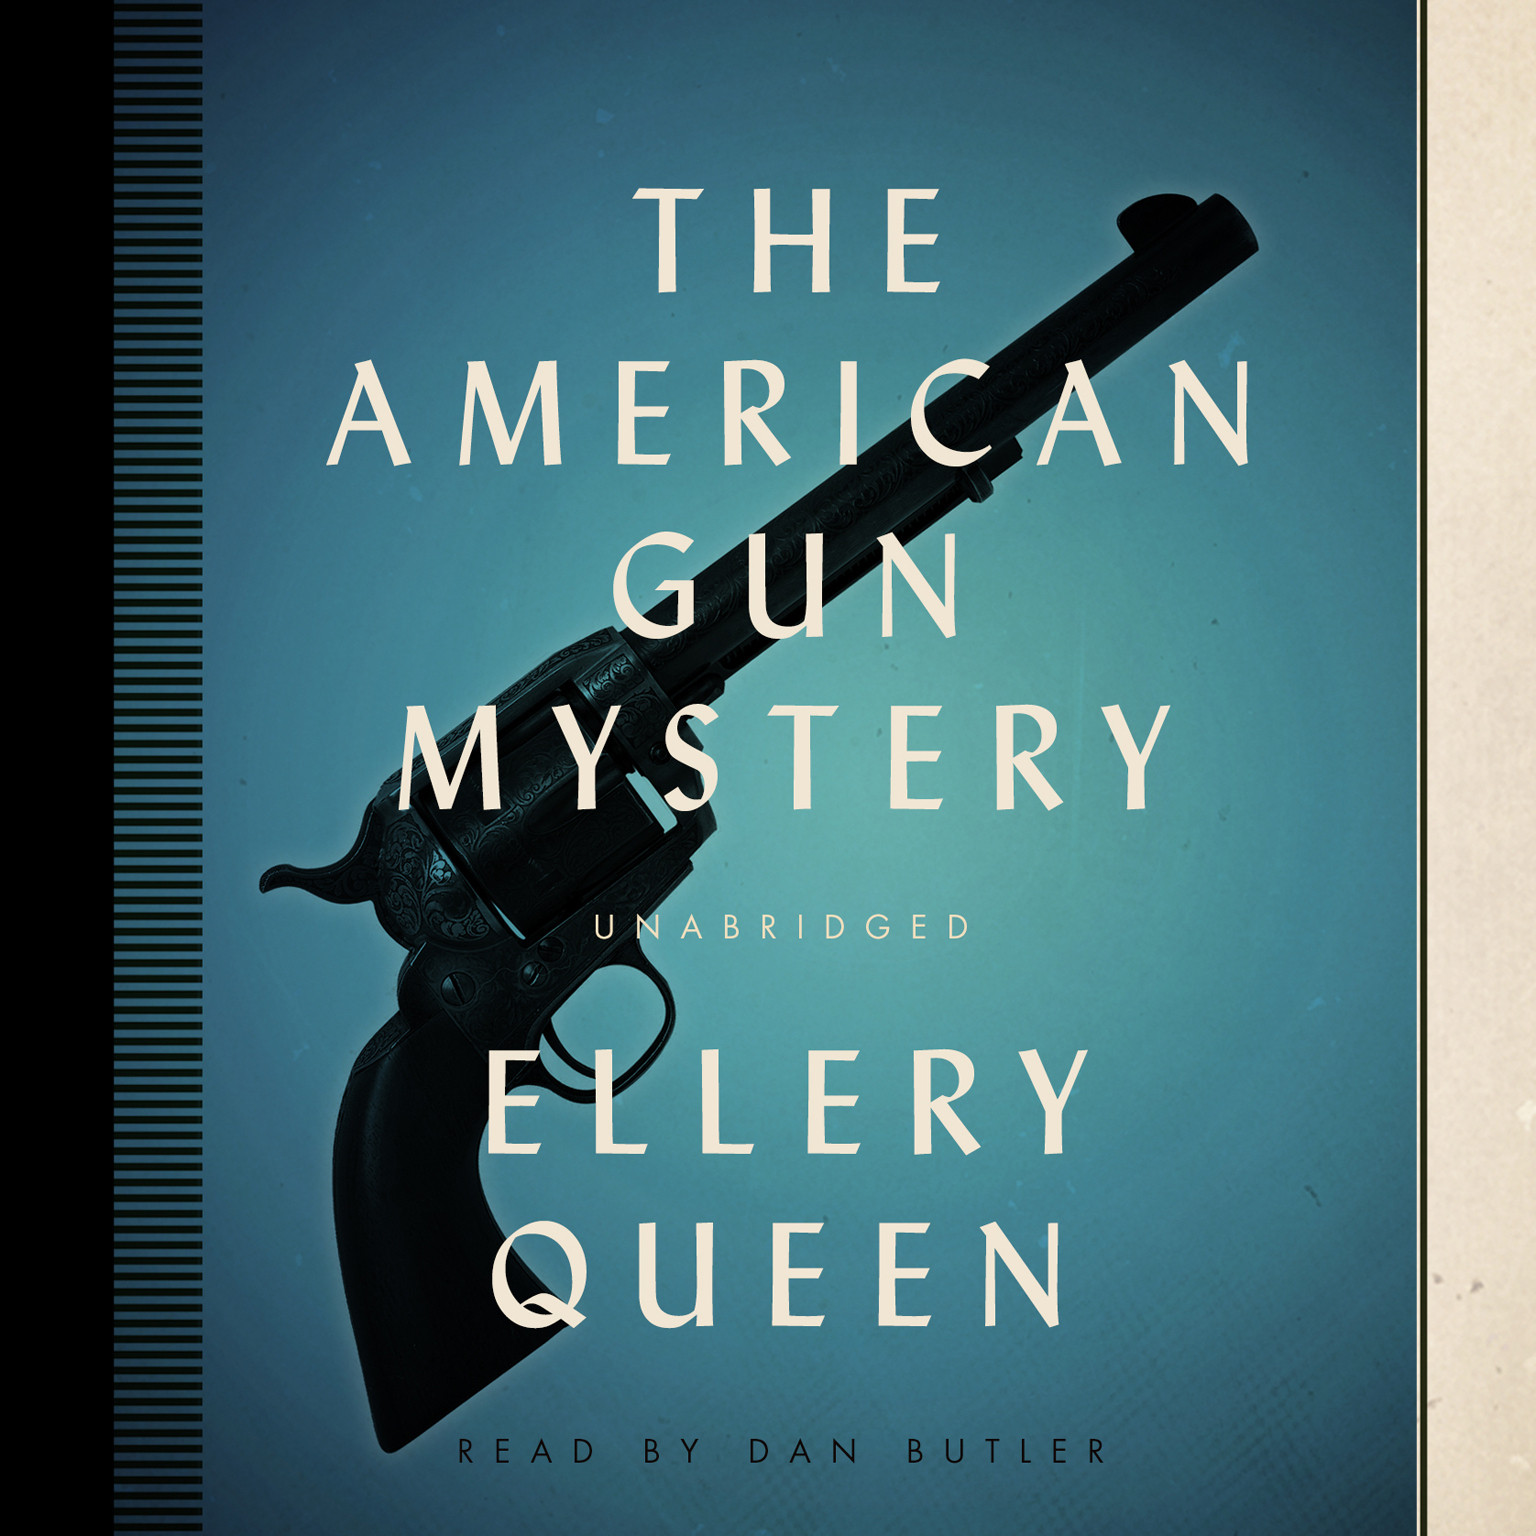 Printable The American Gun Mystery Audiobook Cover Art